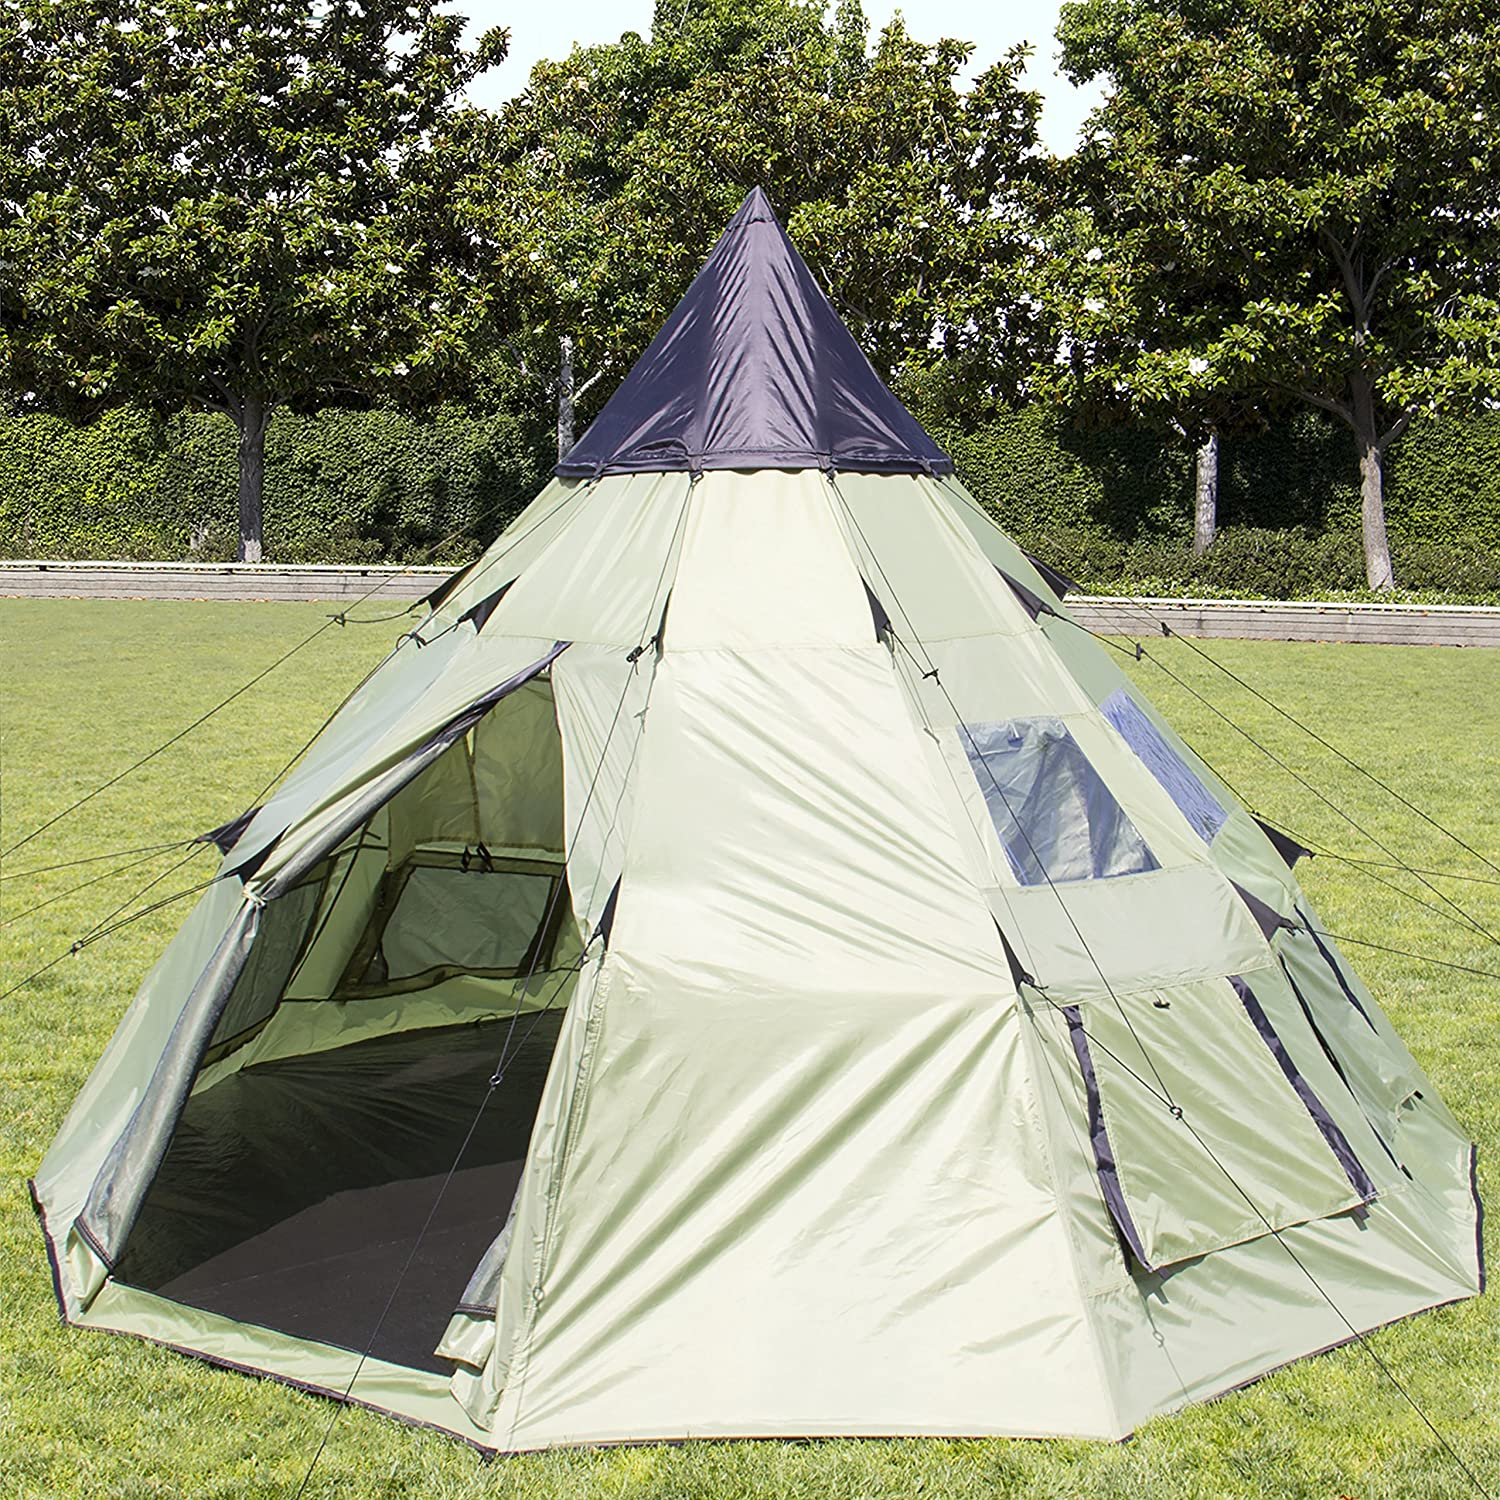 Amazon.com  Best Choice Products 10u0027x10u0027 Teepee C&ing Tent Family Outdoor Sleeping Dome W/ Carry Bag  Sports u0026 Outdoors & Amazon.com : Best Choice Products 10u0027x10u0027 Teepee Camping Tent ...